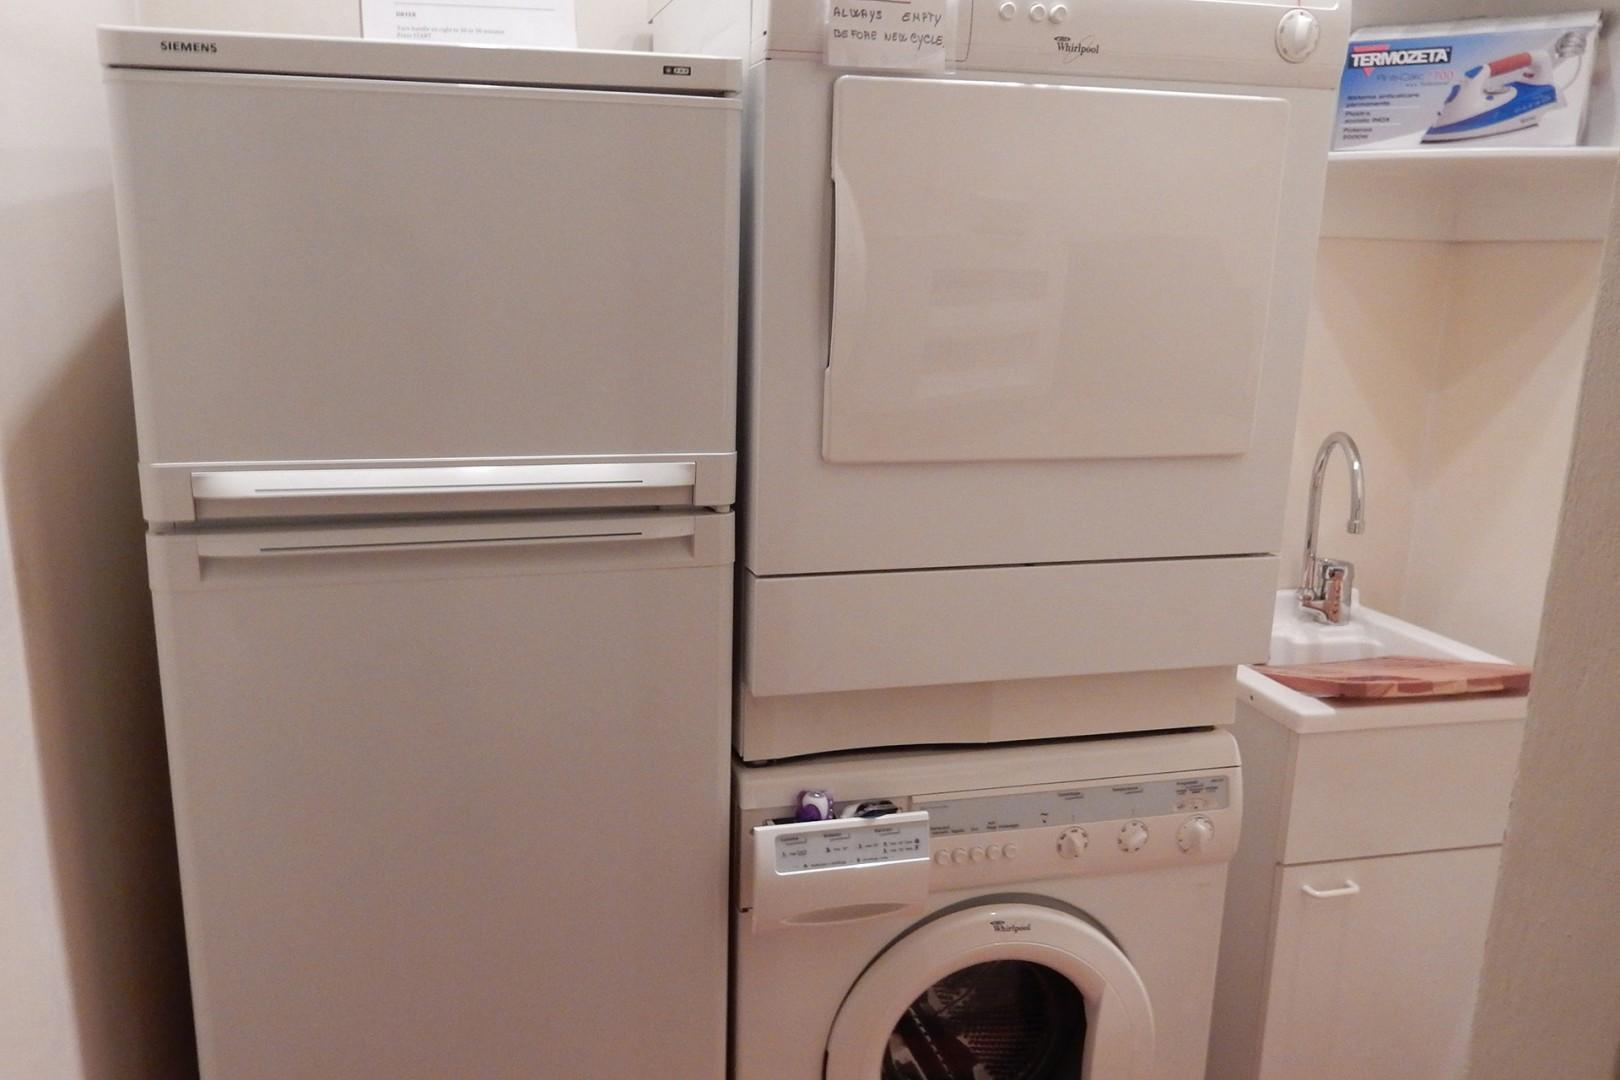 Refrigerator, washer and dryer in apartment.